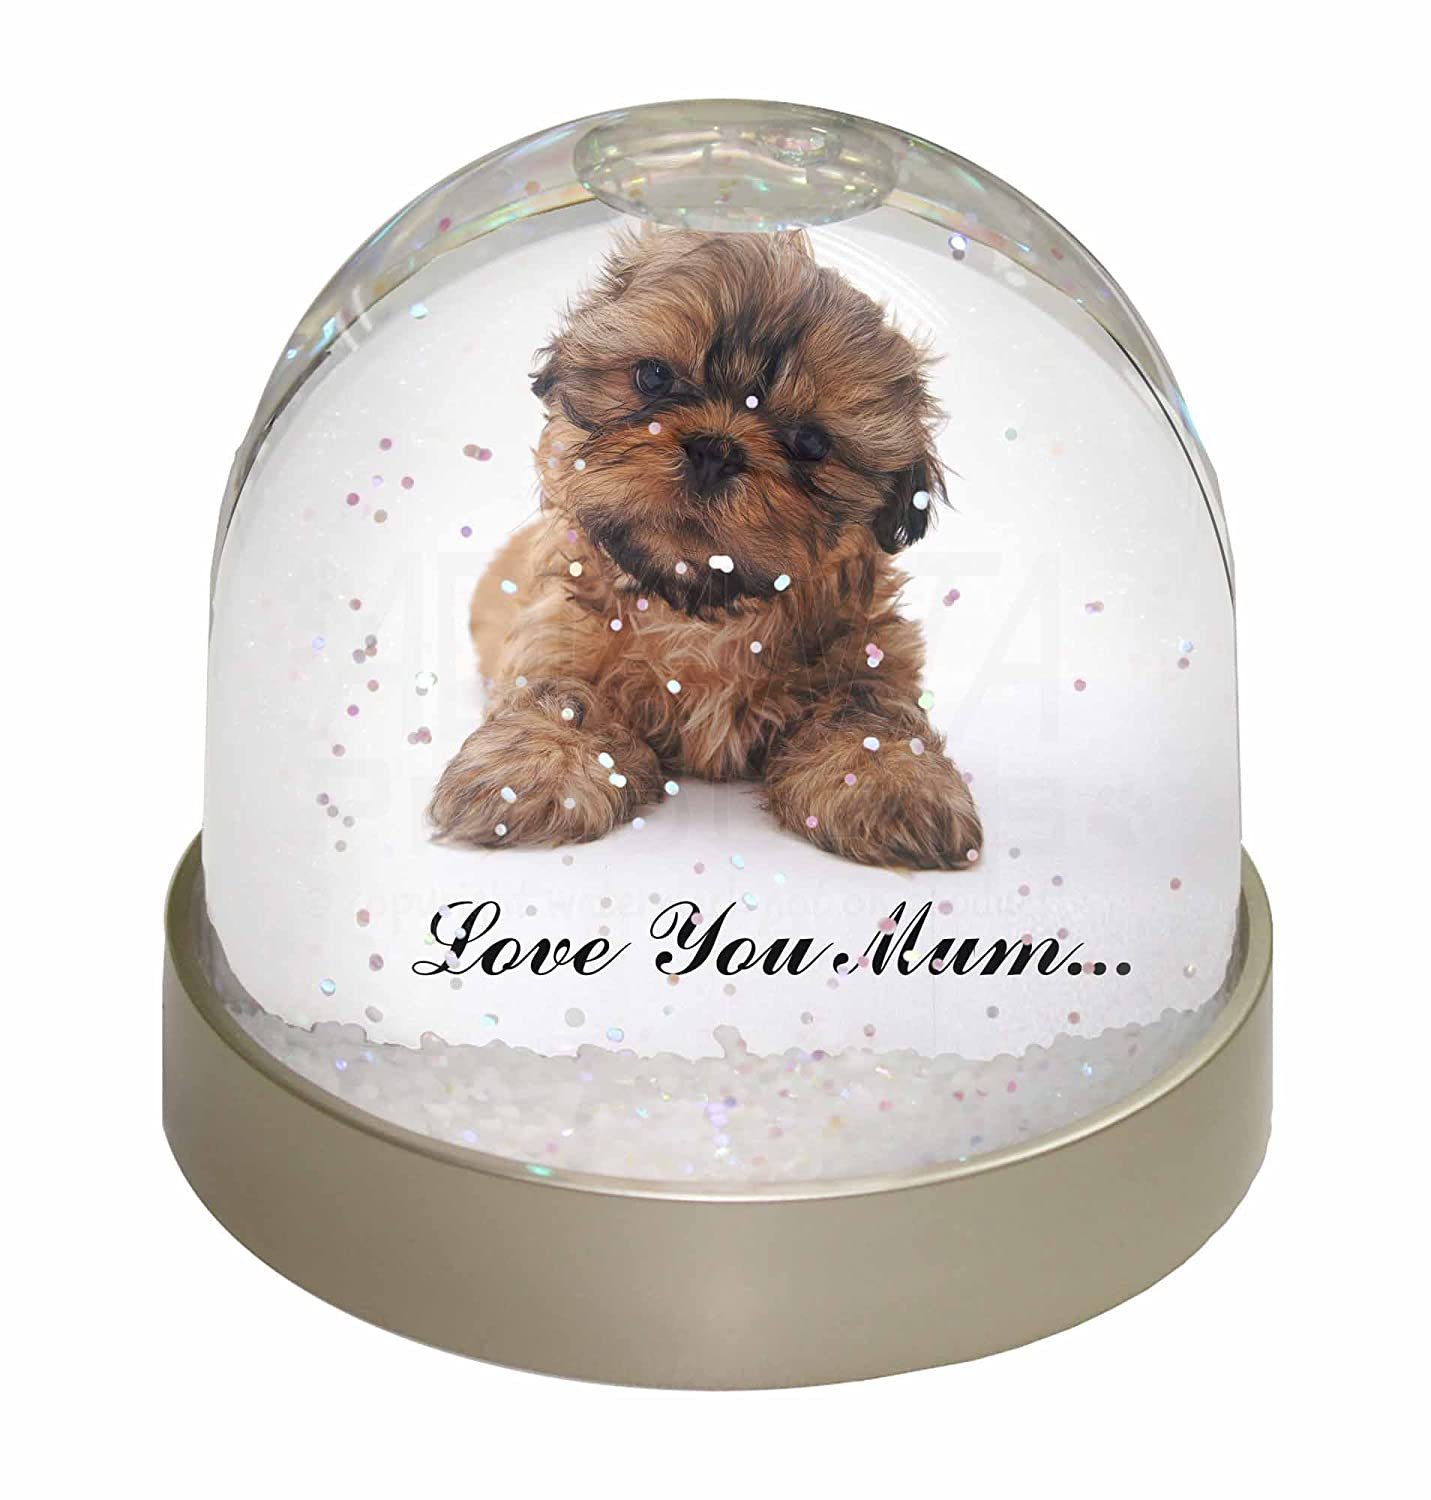 Advanta Shih-Tzu Dog Snow Dome Globe Waterball Gift, Multi-Colour, 9.2 x 9.2 x 8 cm Advanta Products MUM-D12GL